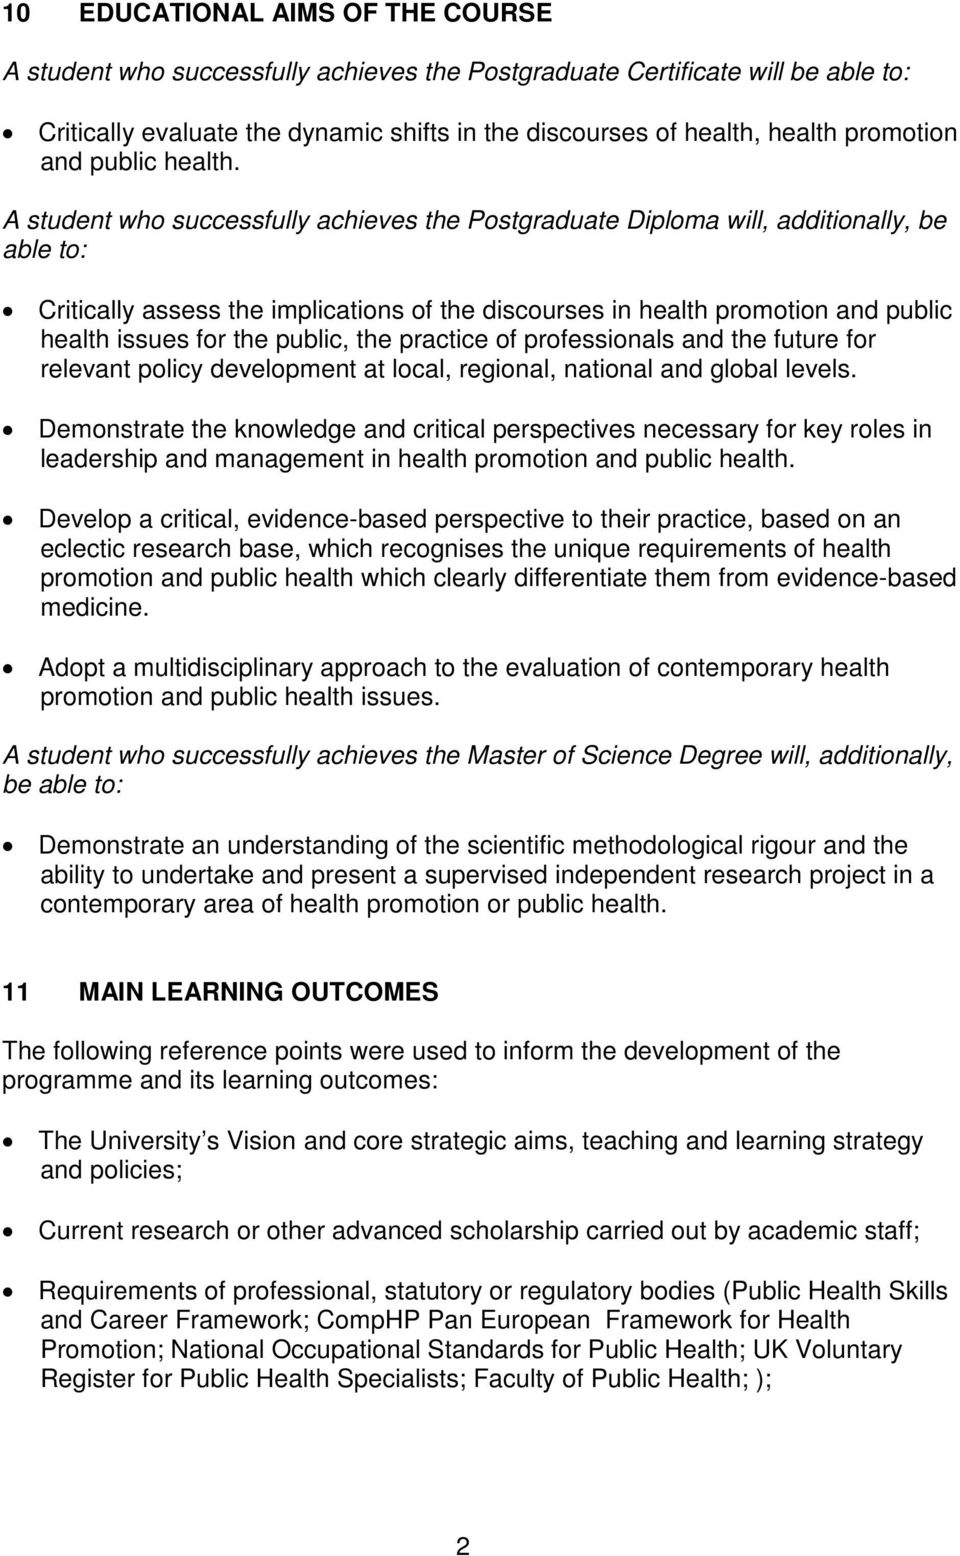 A student who successfully achieves the Postgraduate Diploma will, additionally, be able to: Critically assess the implications of the discourses in health promotion and public health issues for the